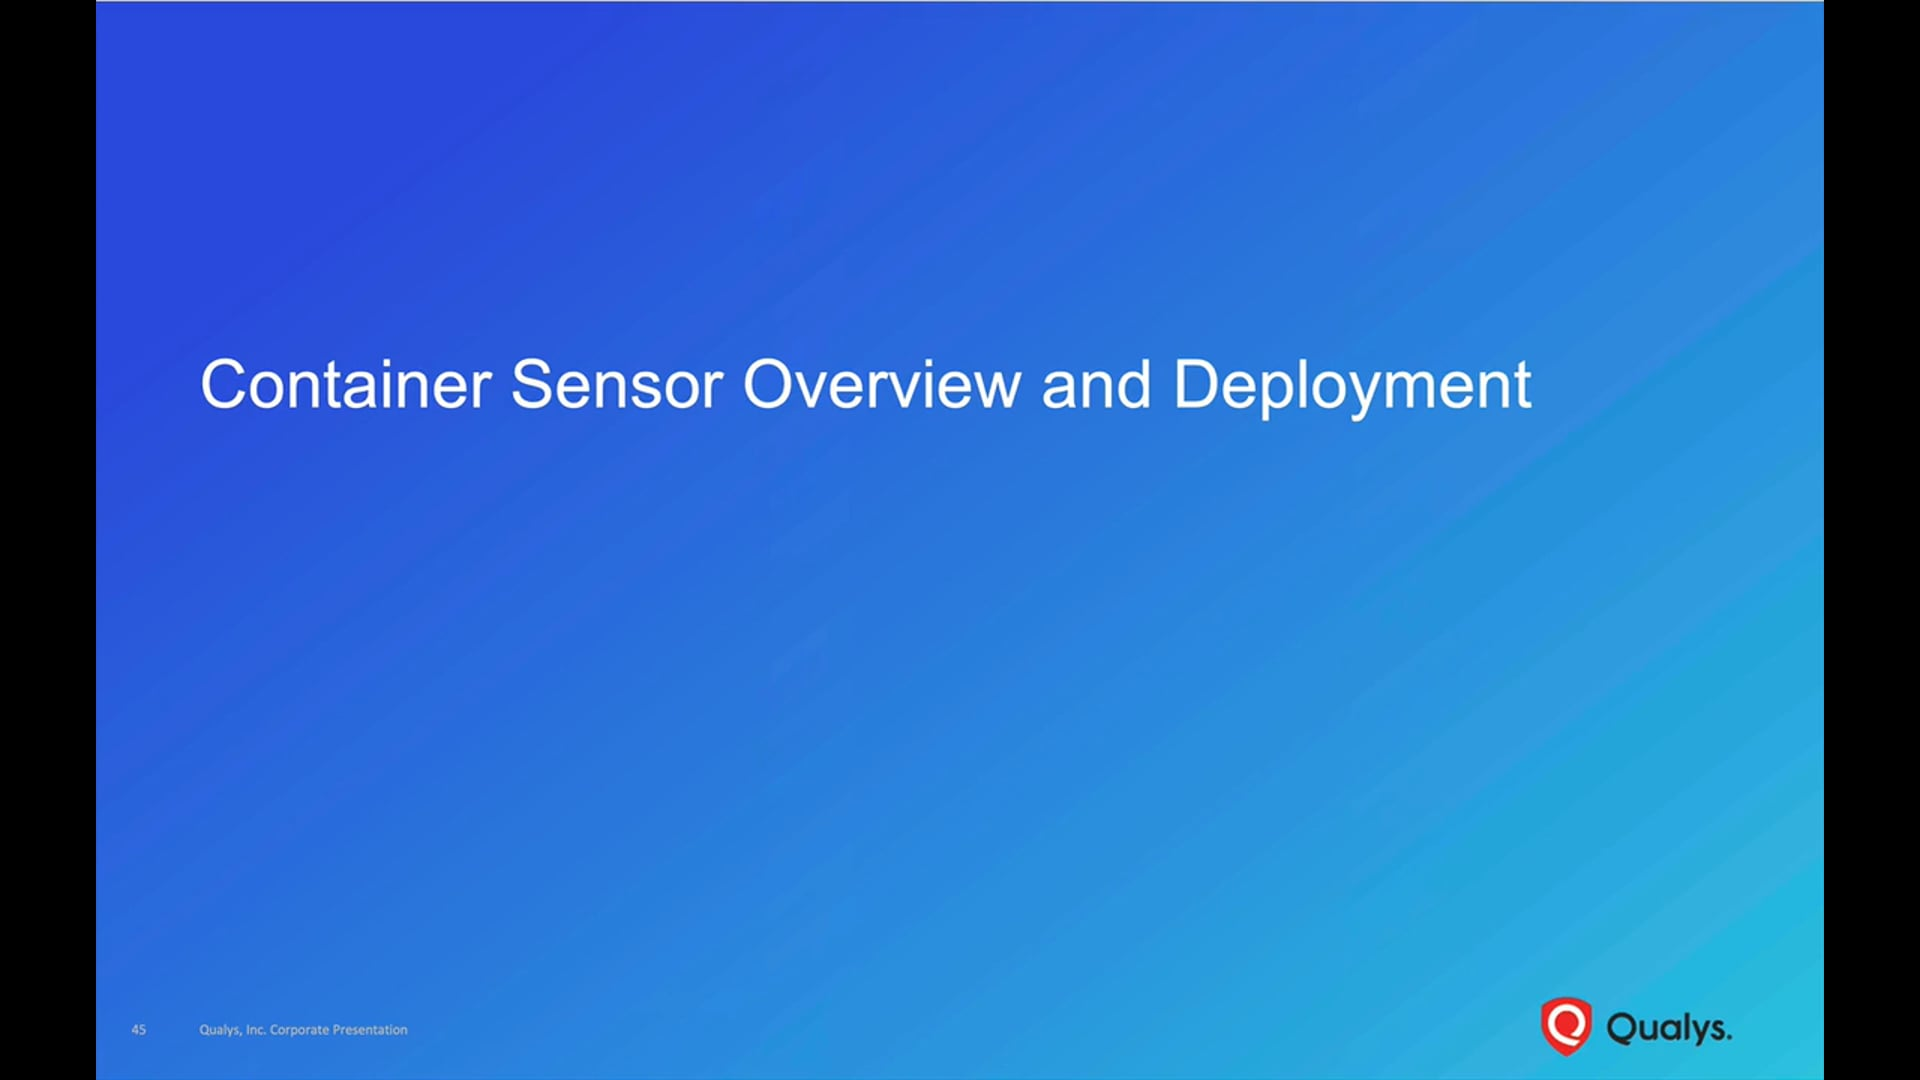 Container Sensor Overview and Deployment